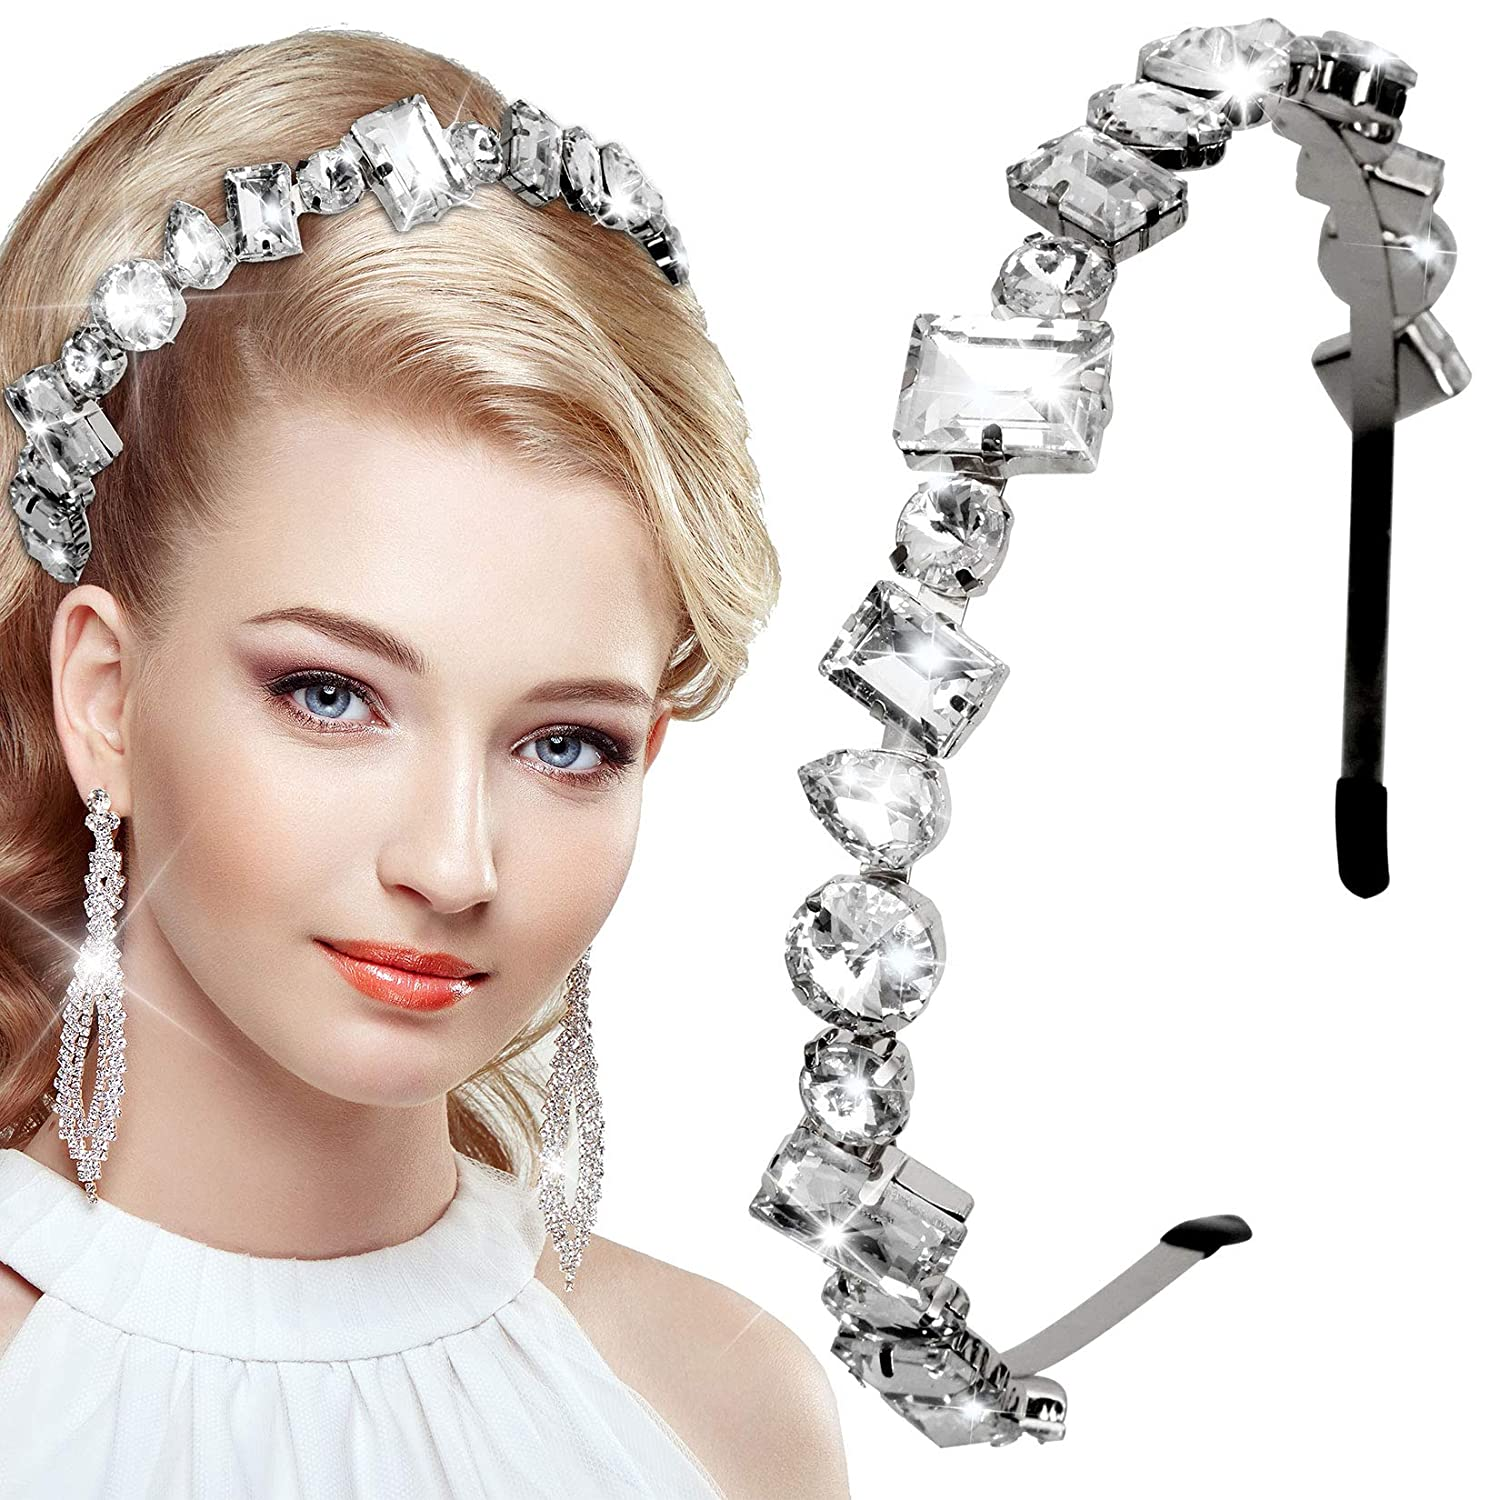 Rhinestone Headbands Jeweled Manufacturer direct delivery Headband for and Silver Free shipping anywhere in the nation Women Girl